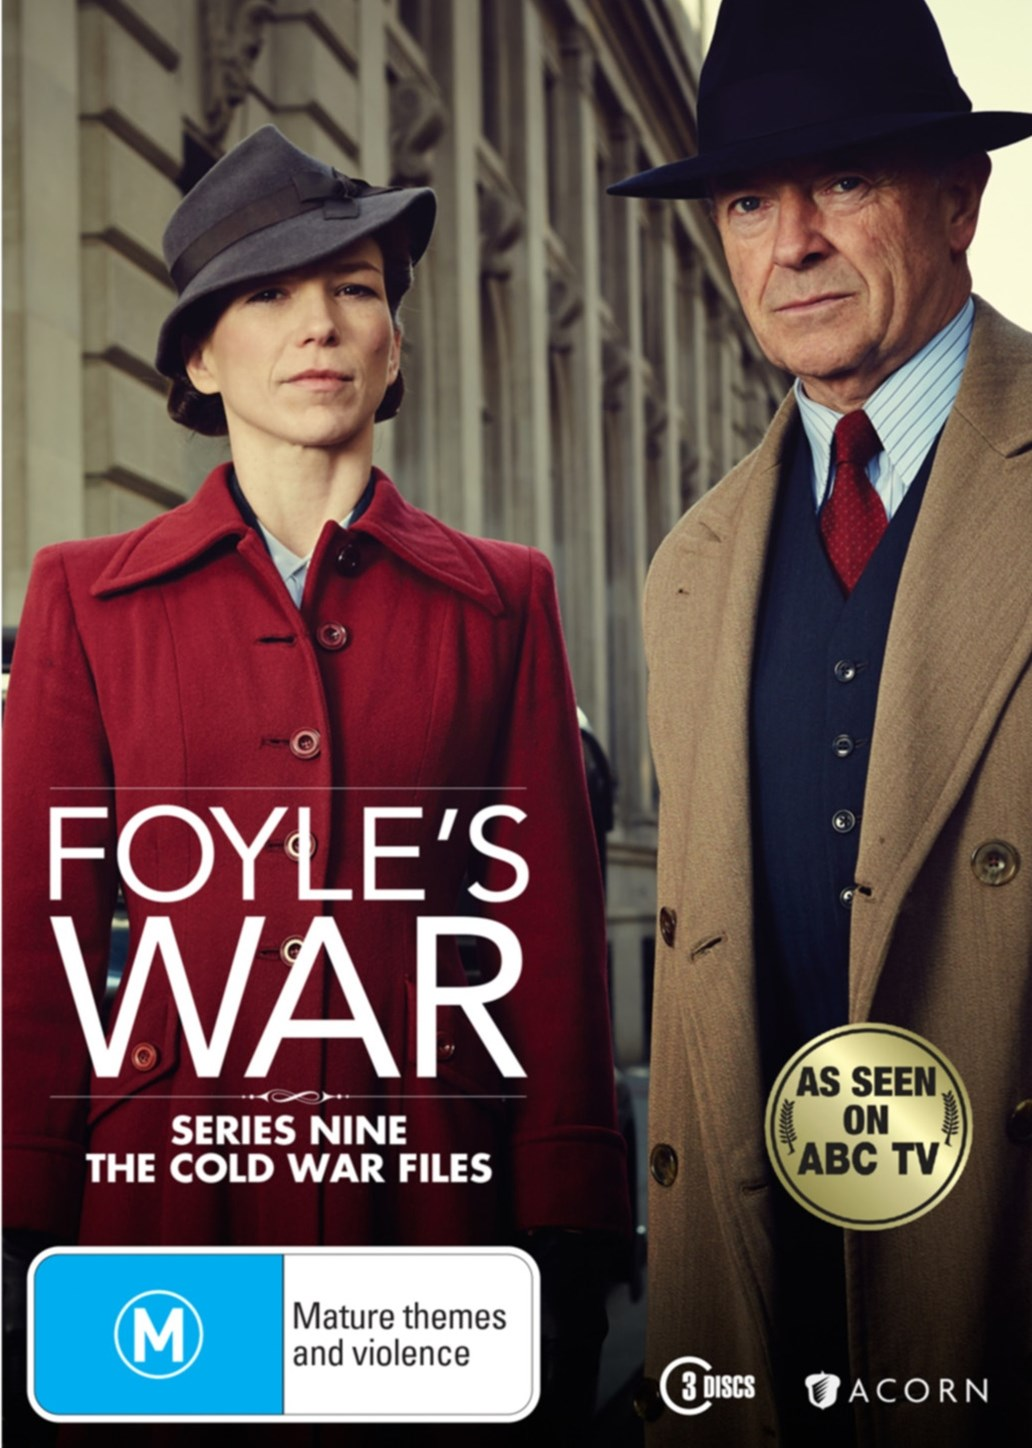 Foyle's War: Series 9 - The Cold War Files